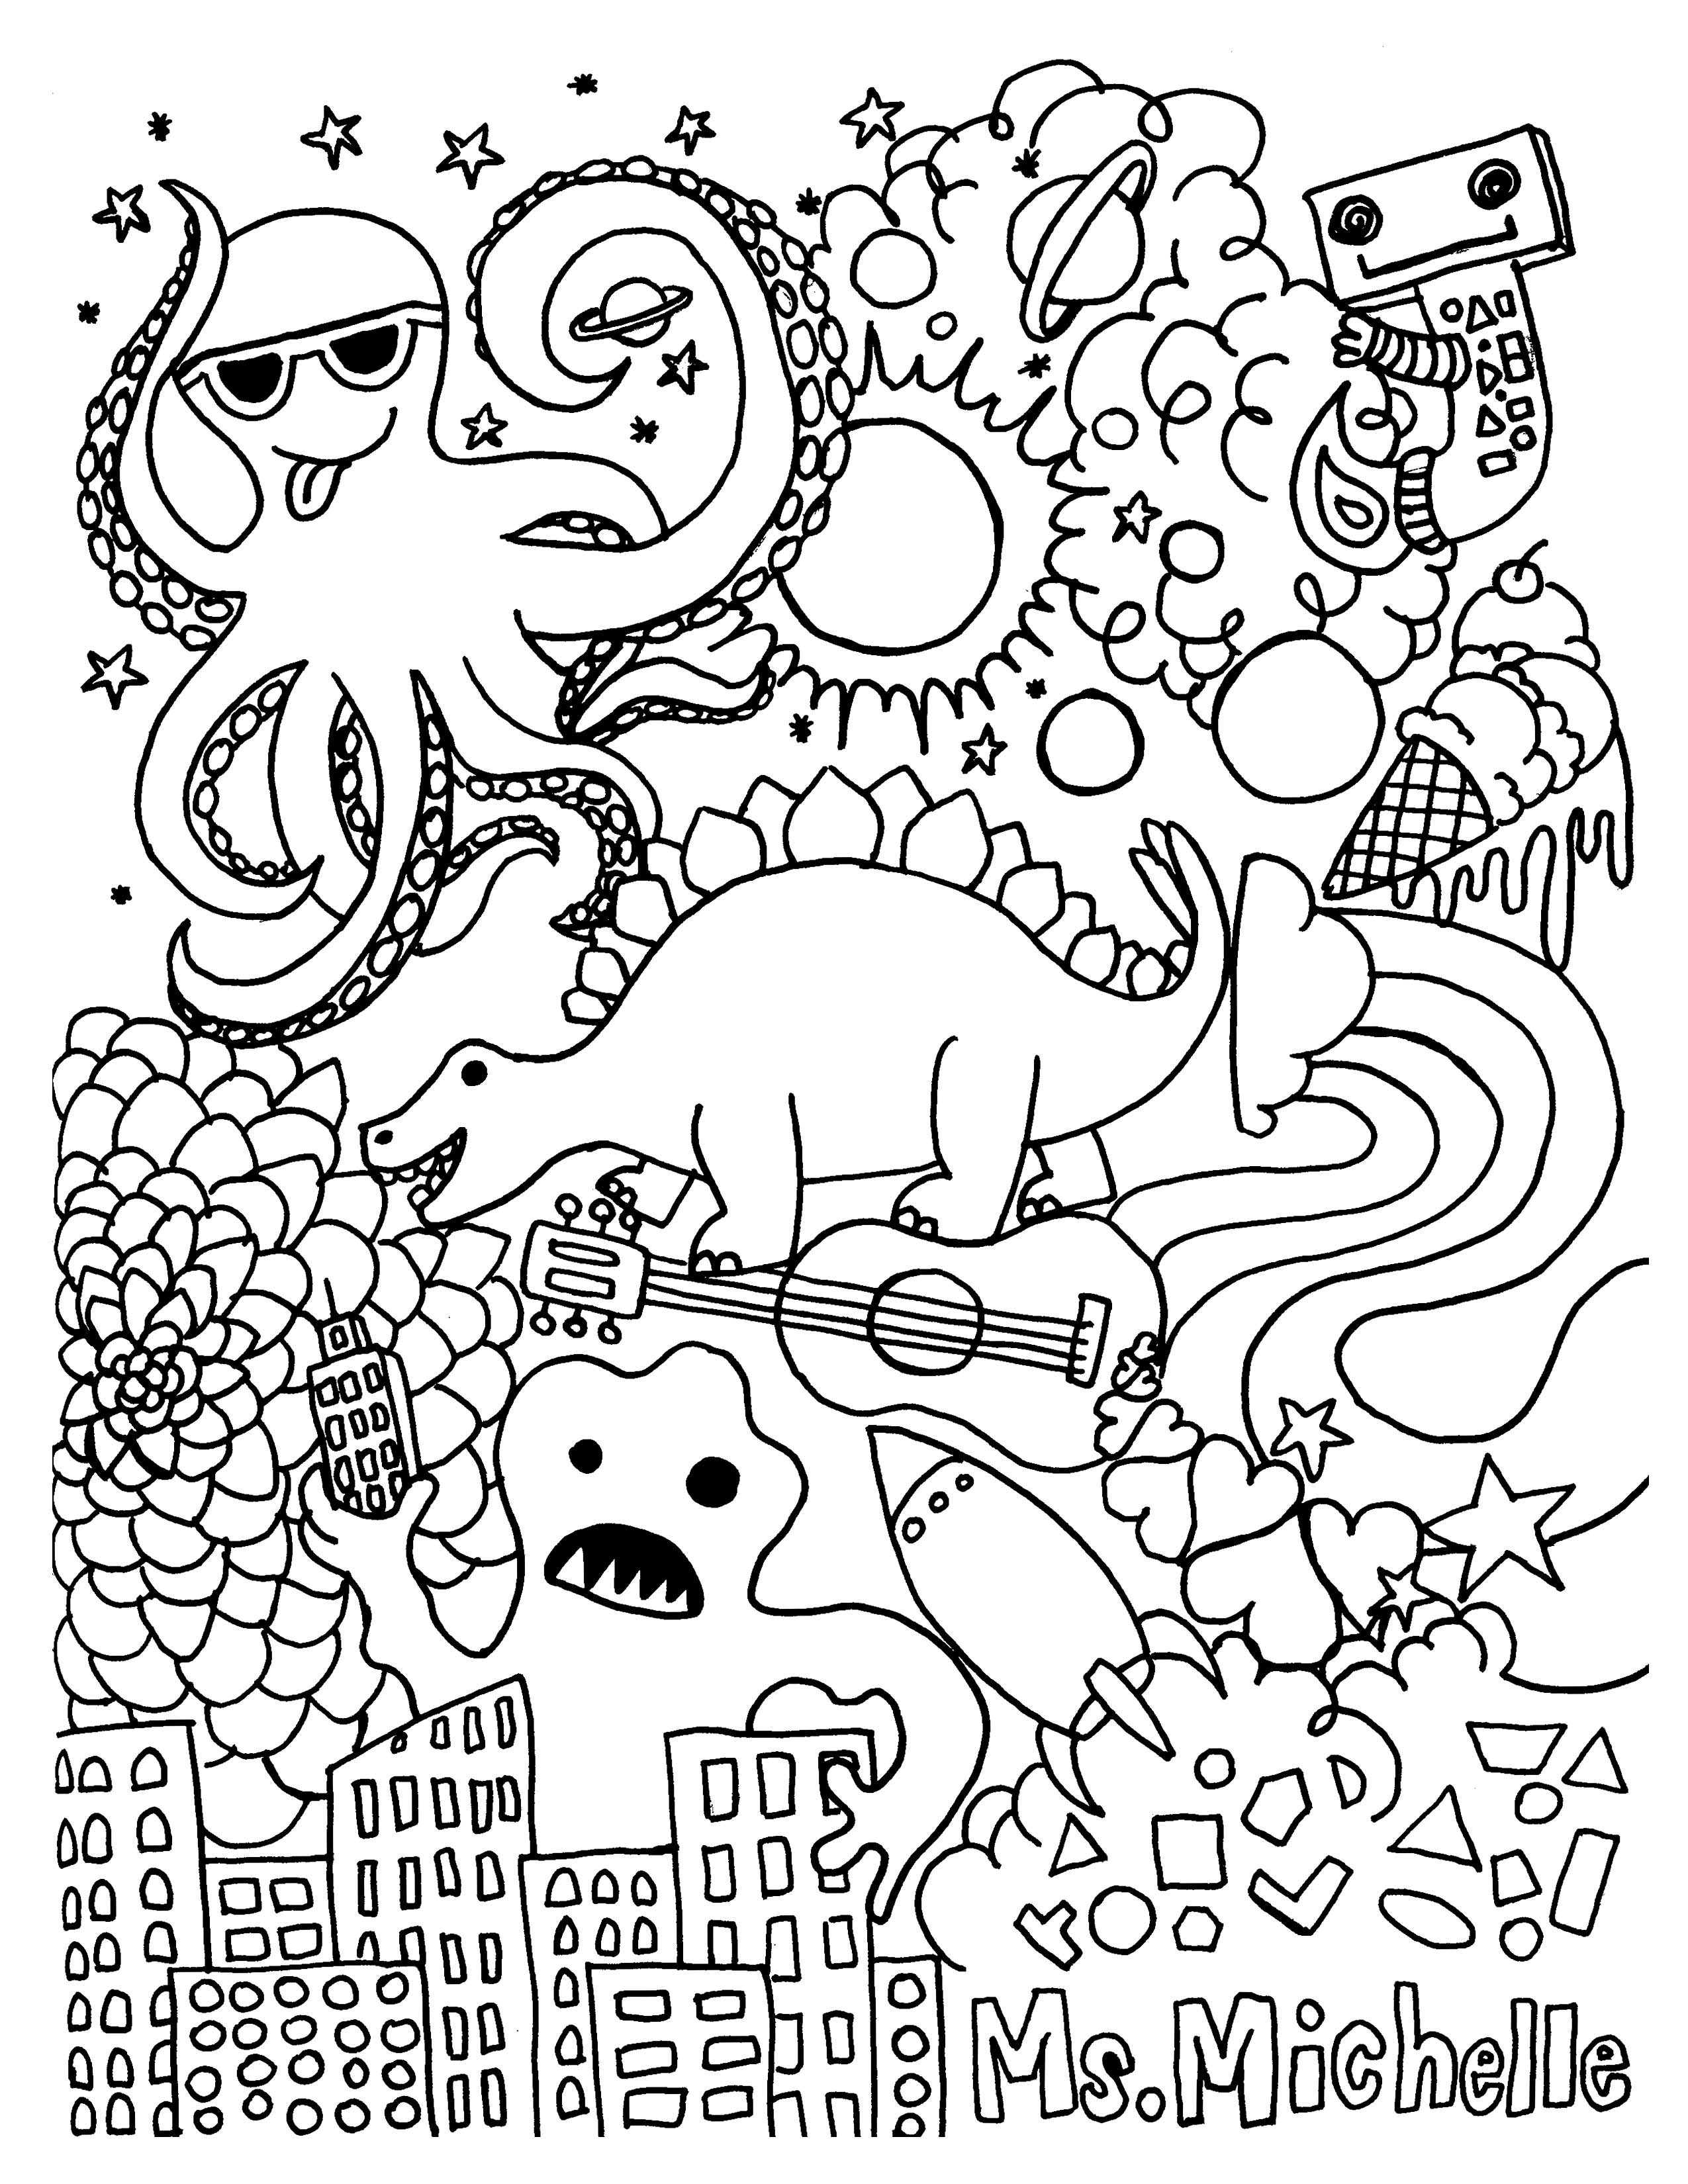 2550x3300 Marvelous Coloring Pages Printable To Color Kids Drawing Ideas Pic